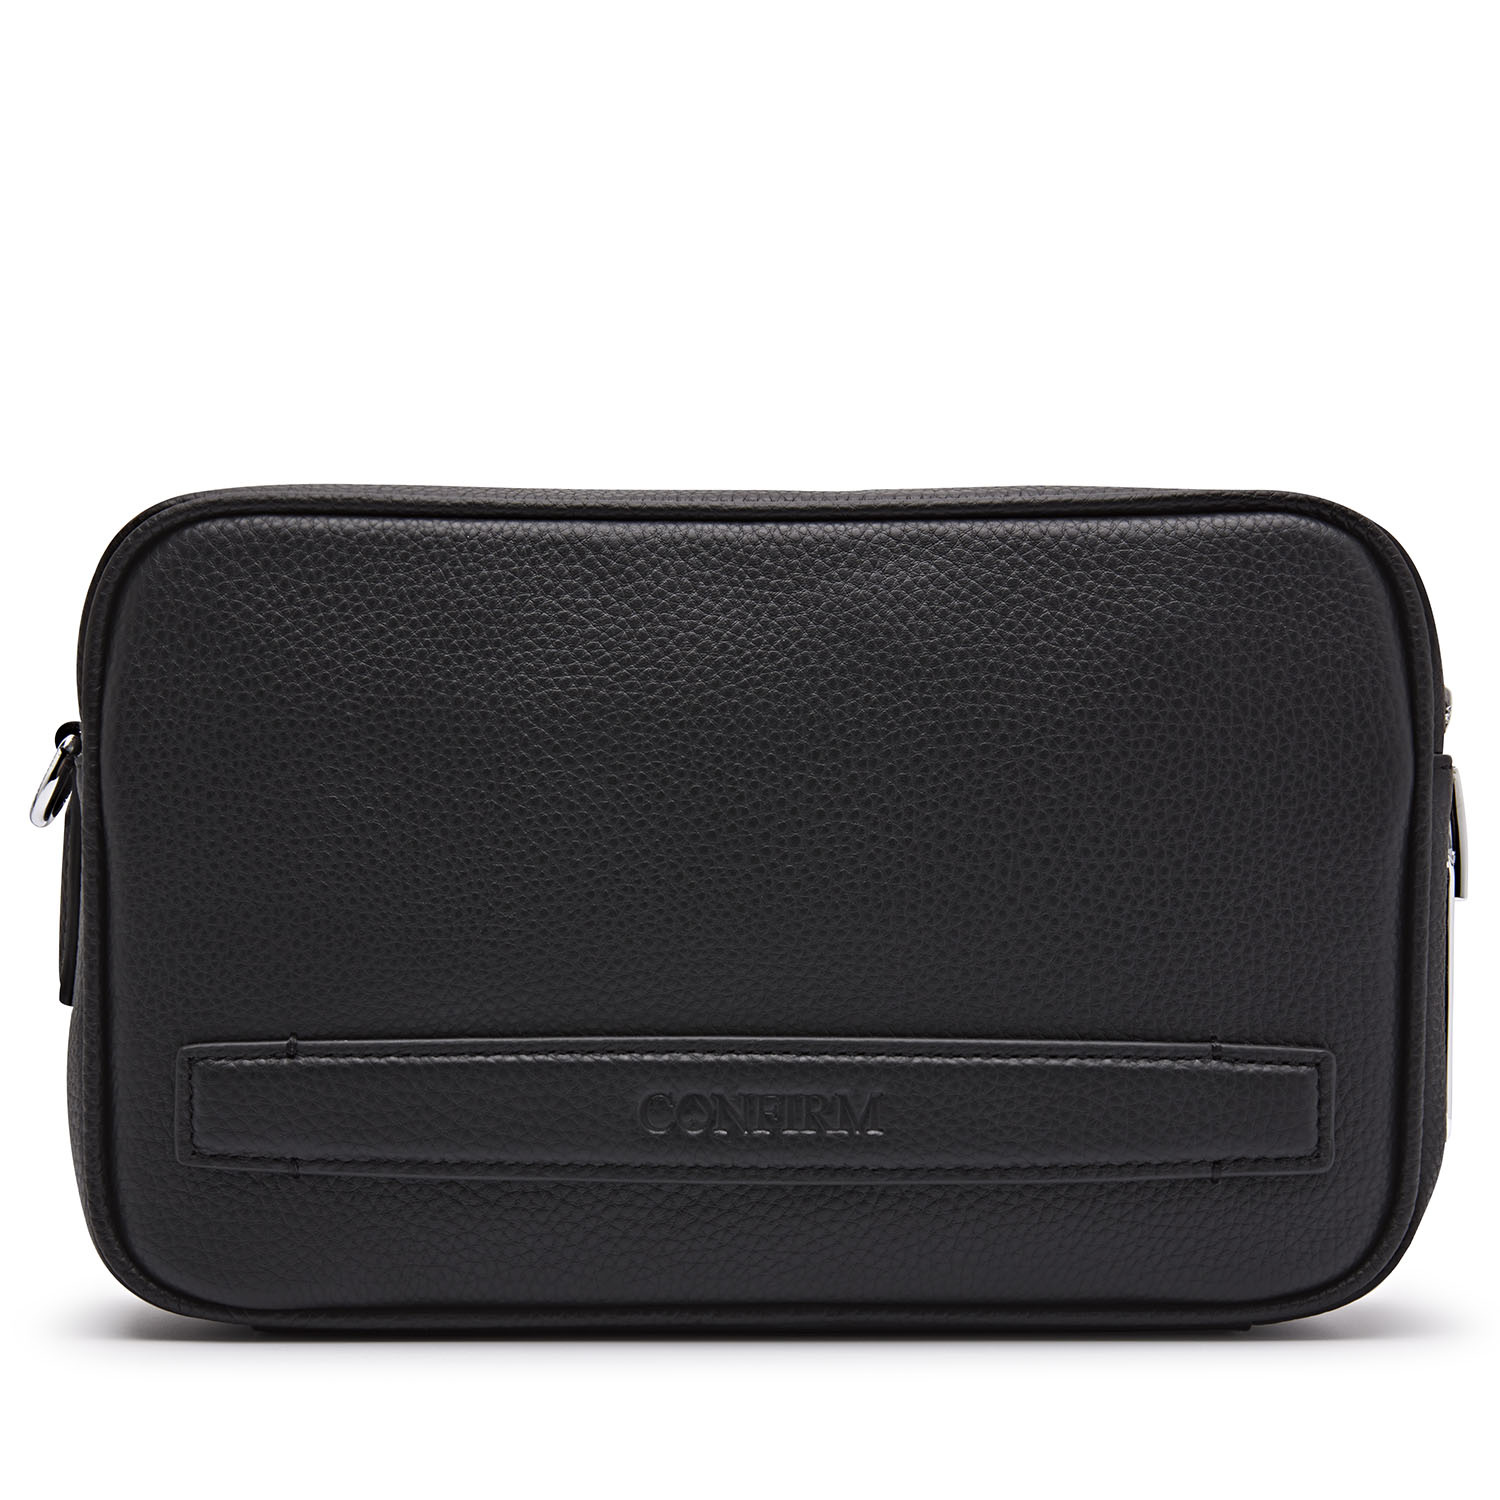 CONFIRM IDENTITAS - CLUTCH BLACK-2